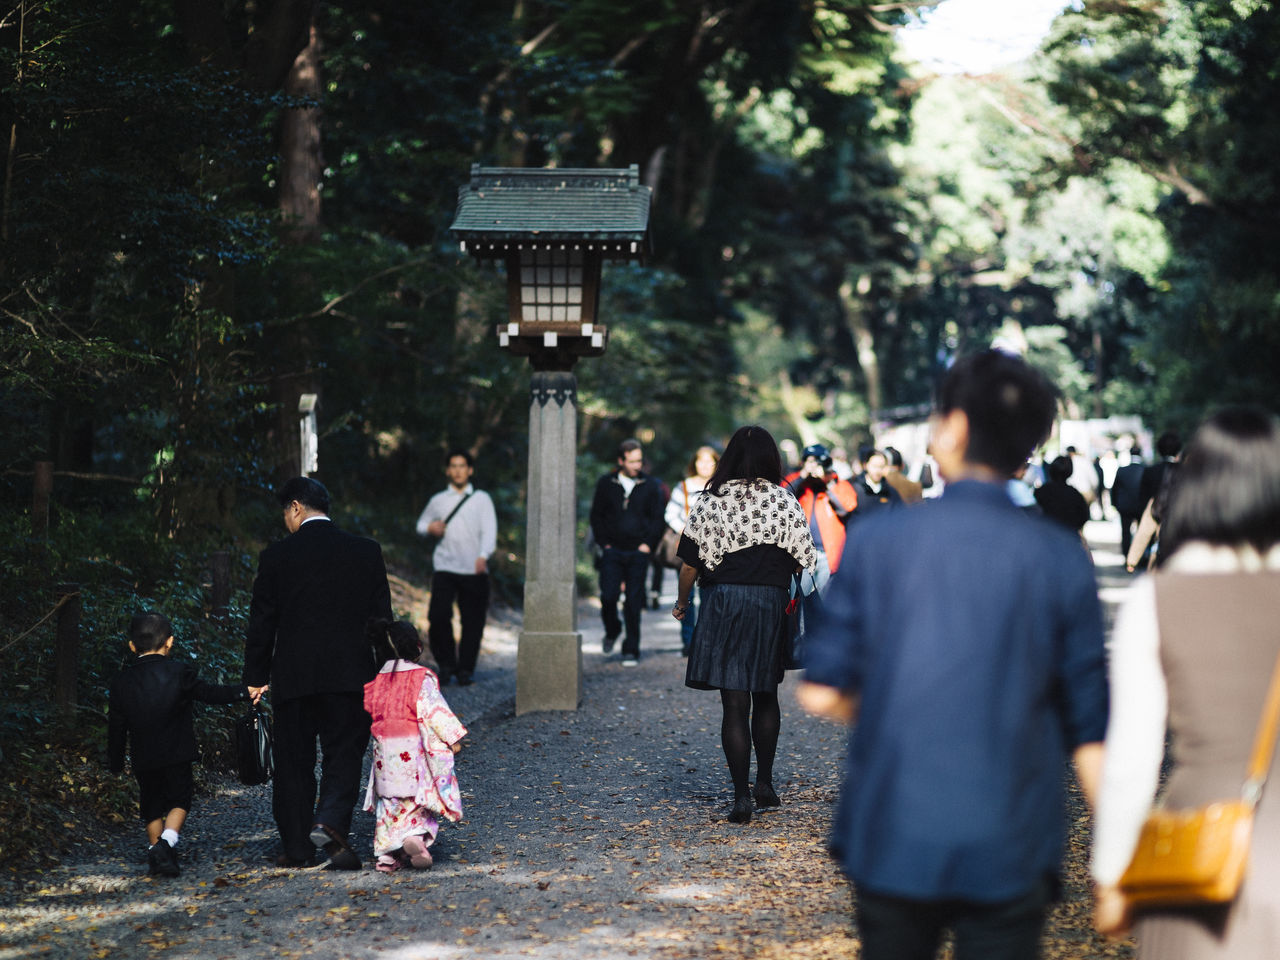 Tokyo Life Adult Celebration Childhood City Crowd Day Family Forest Green Greenery Kids Large Group Of People Light And Shadow Men Outdoors Parents Park People Real People Shrine Walk Walking Warm Warm Colors Women